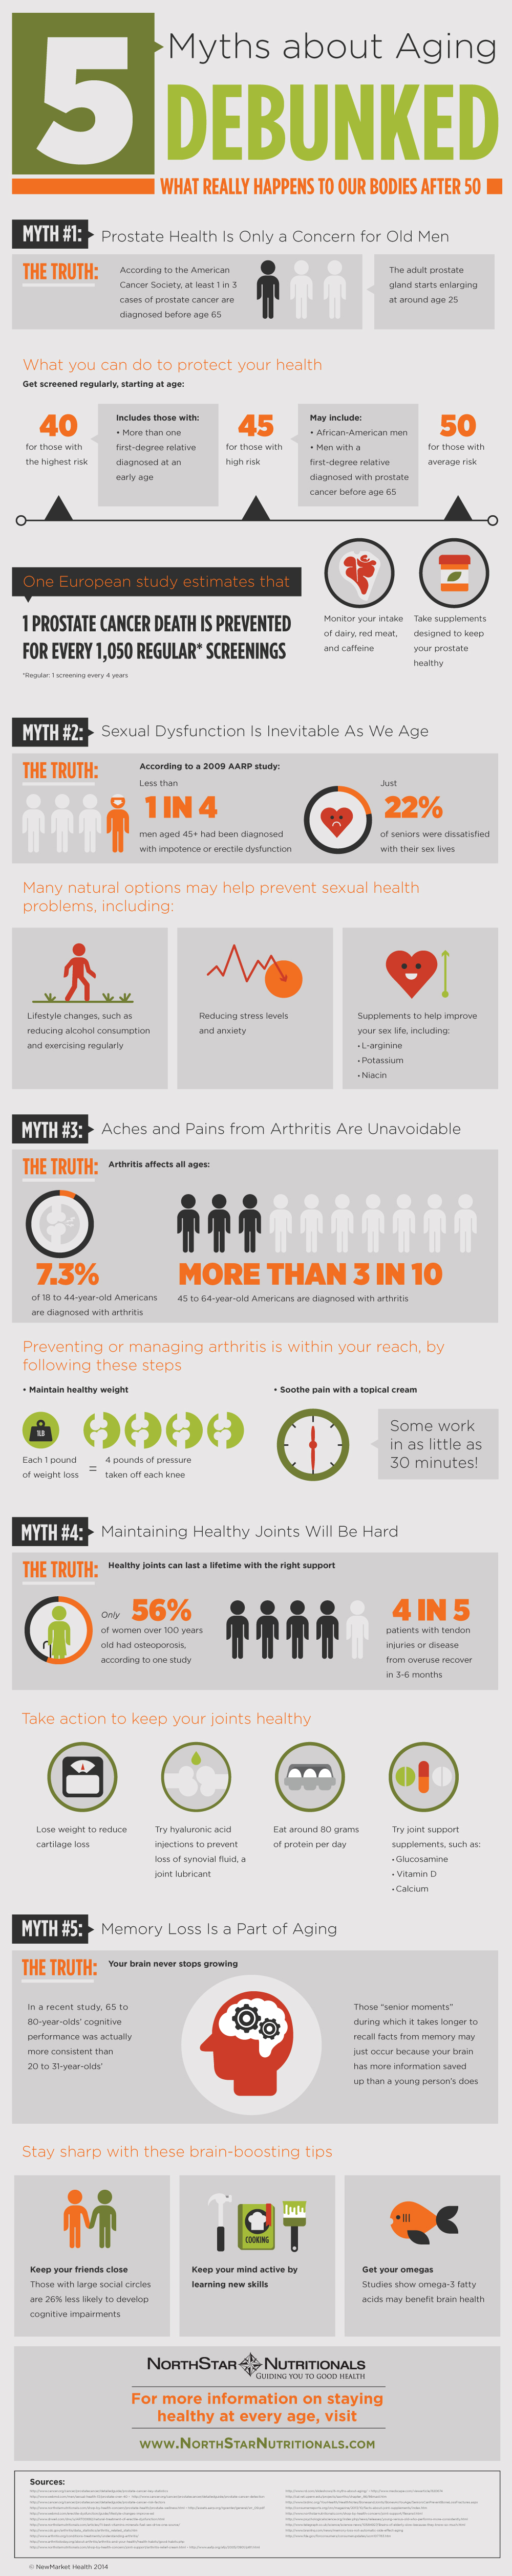 5 Myths About Aging Debunked [#Infographic]